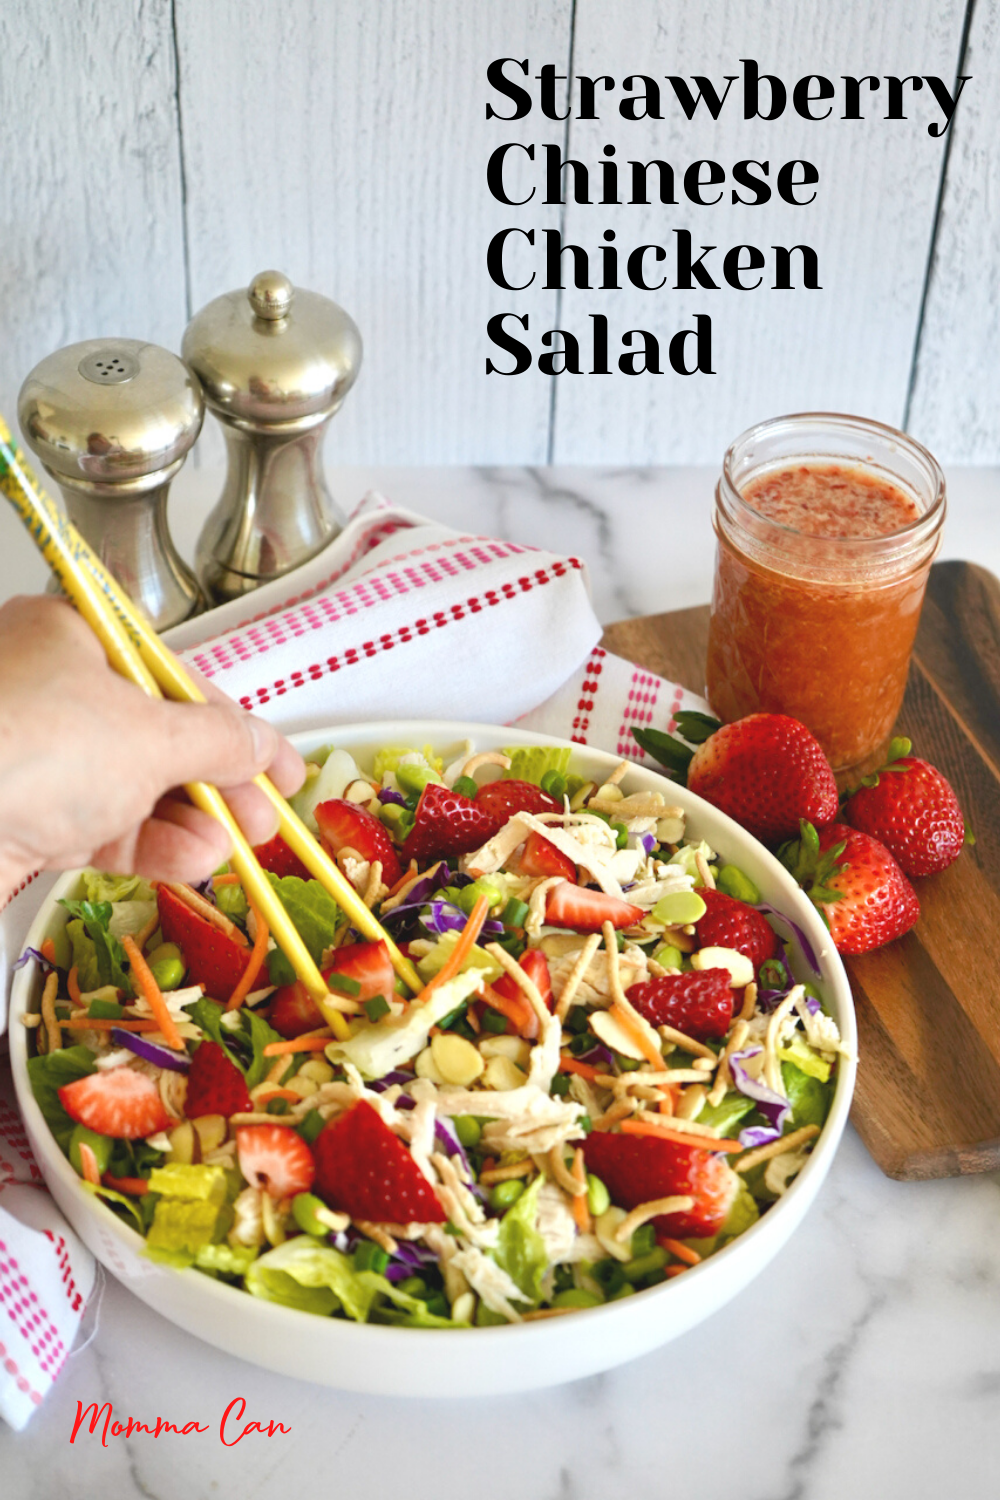 The Best Strawberry Chinese Chicken Salad